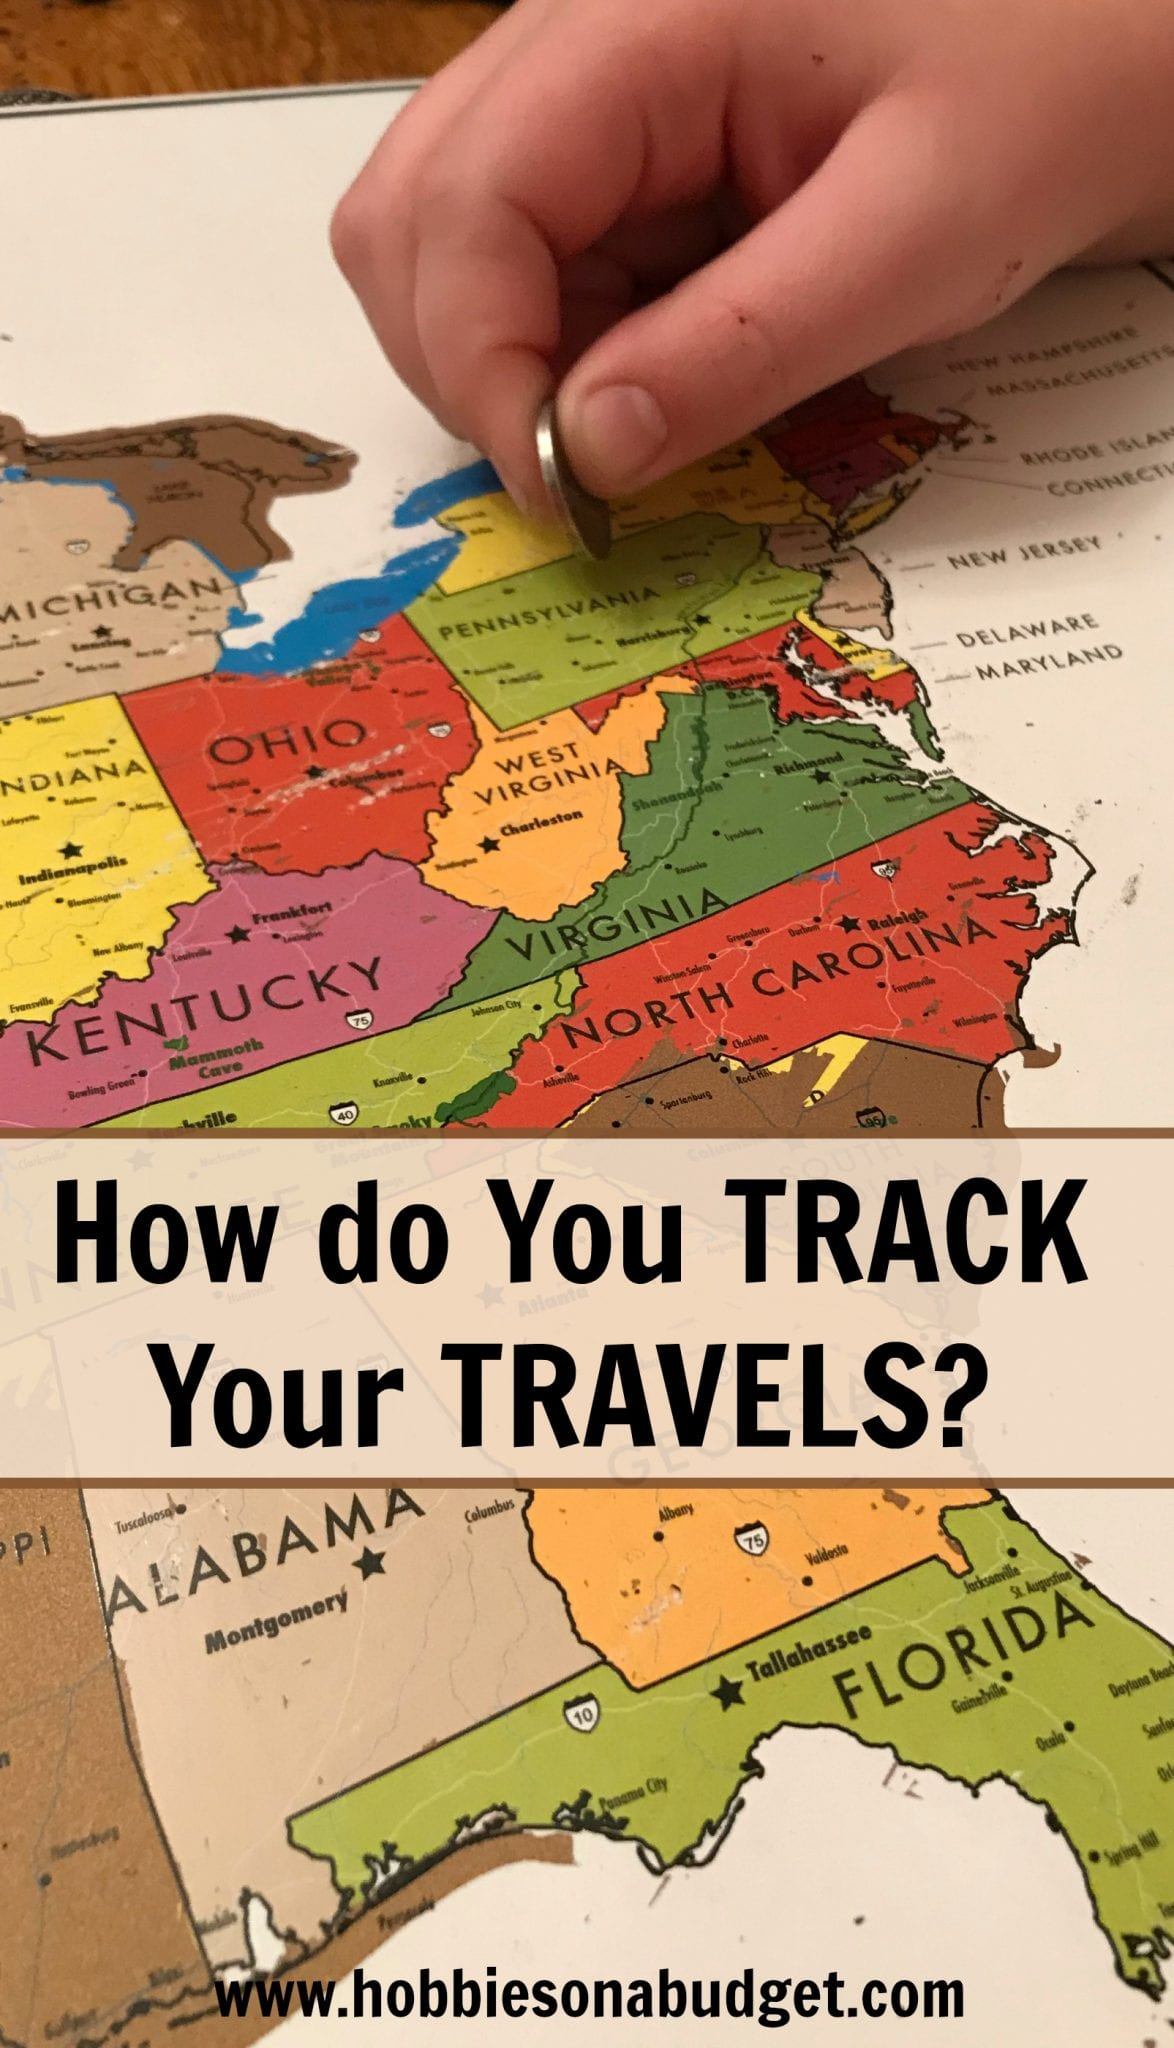 How do you track your travels?